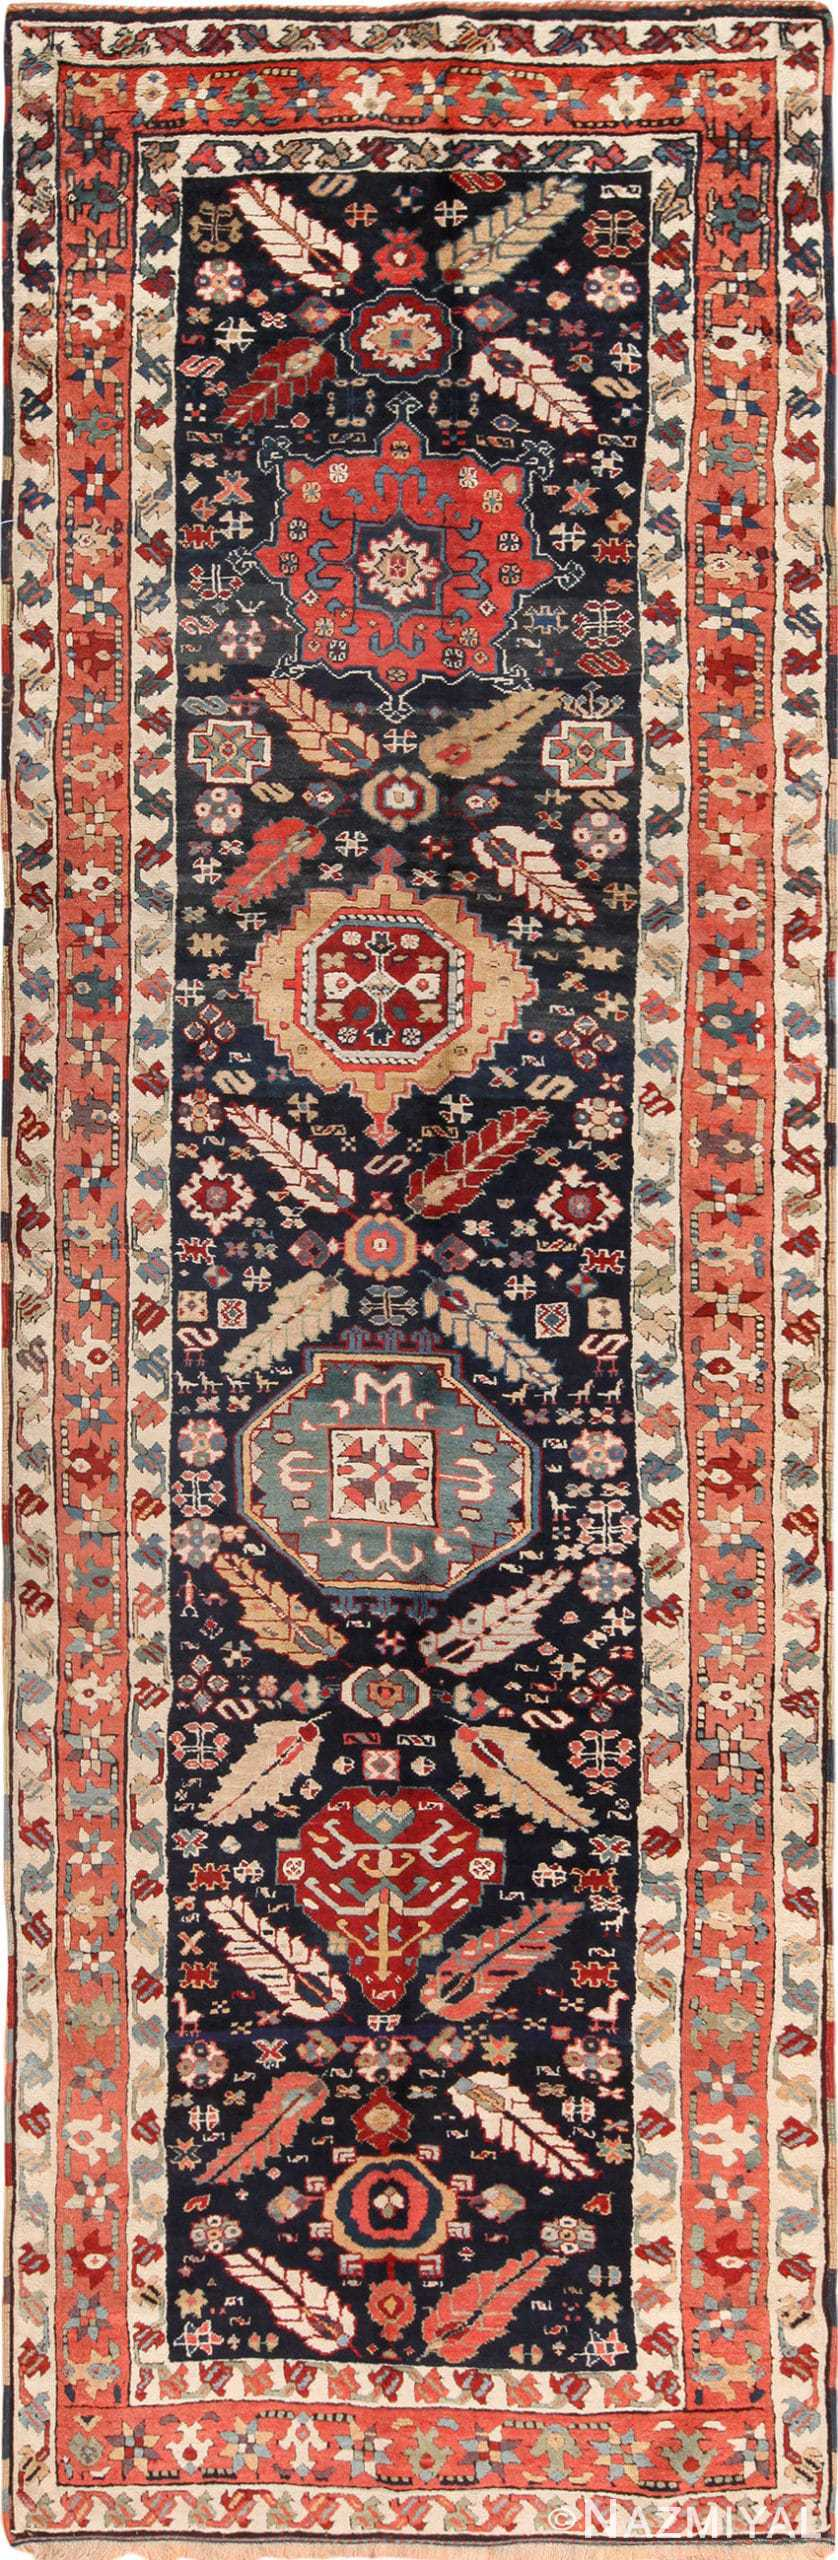 Tribal Antique Northwest Persian Runner Rug 49424 by Nazmiyal